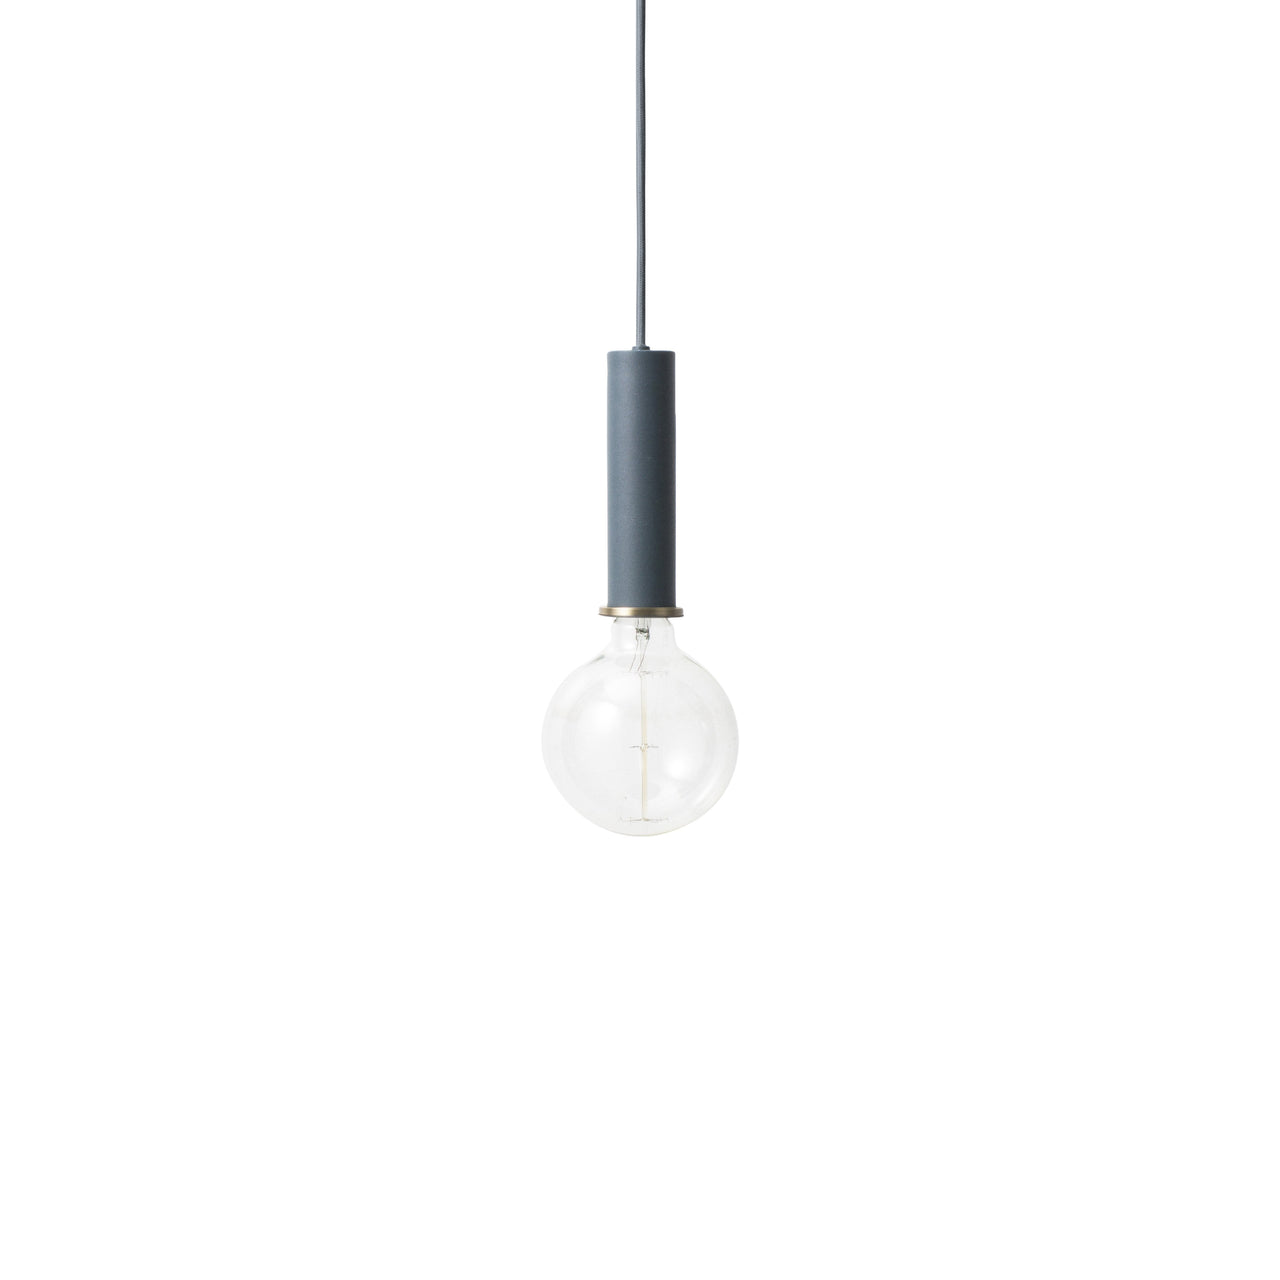 Collect Lighting: Pendant + High + Dark Blue